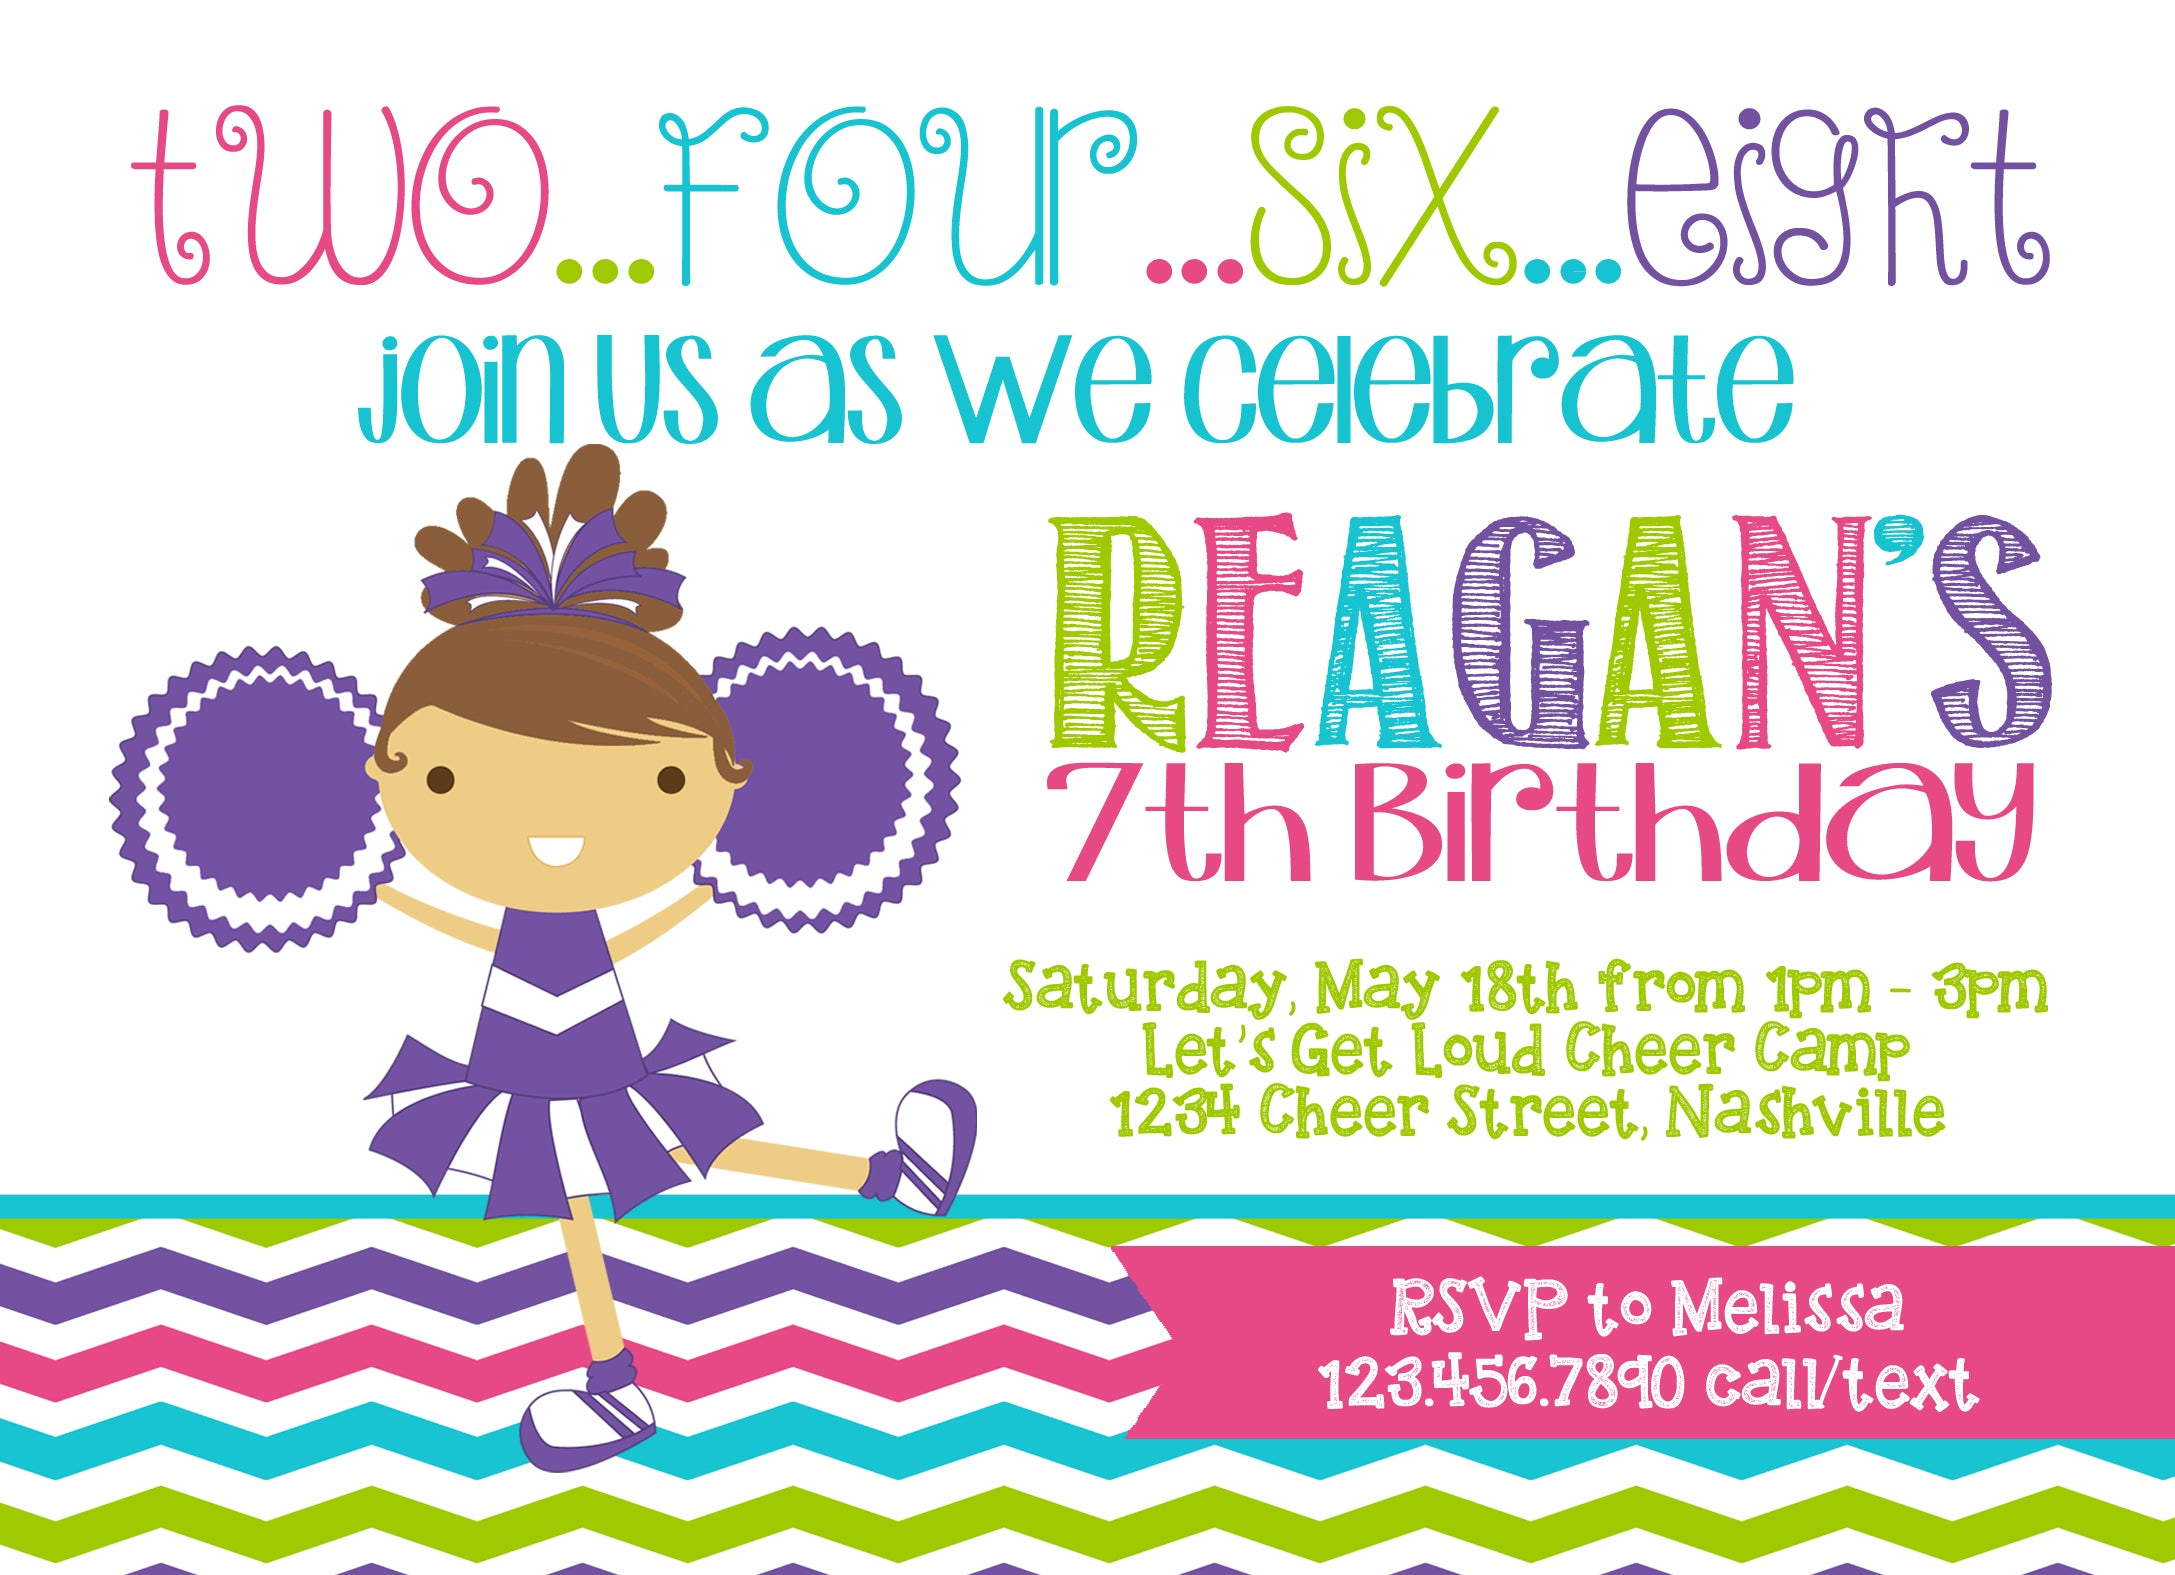 Cheerleader girl birthday party invitation social party paper cheerleader girl birthday party invitation cheerleader girl birthday party invitation filmwisefo